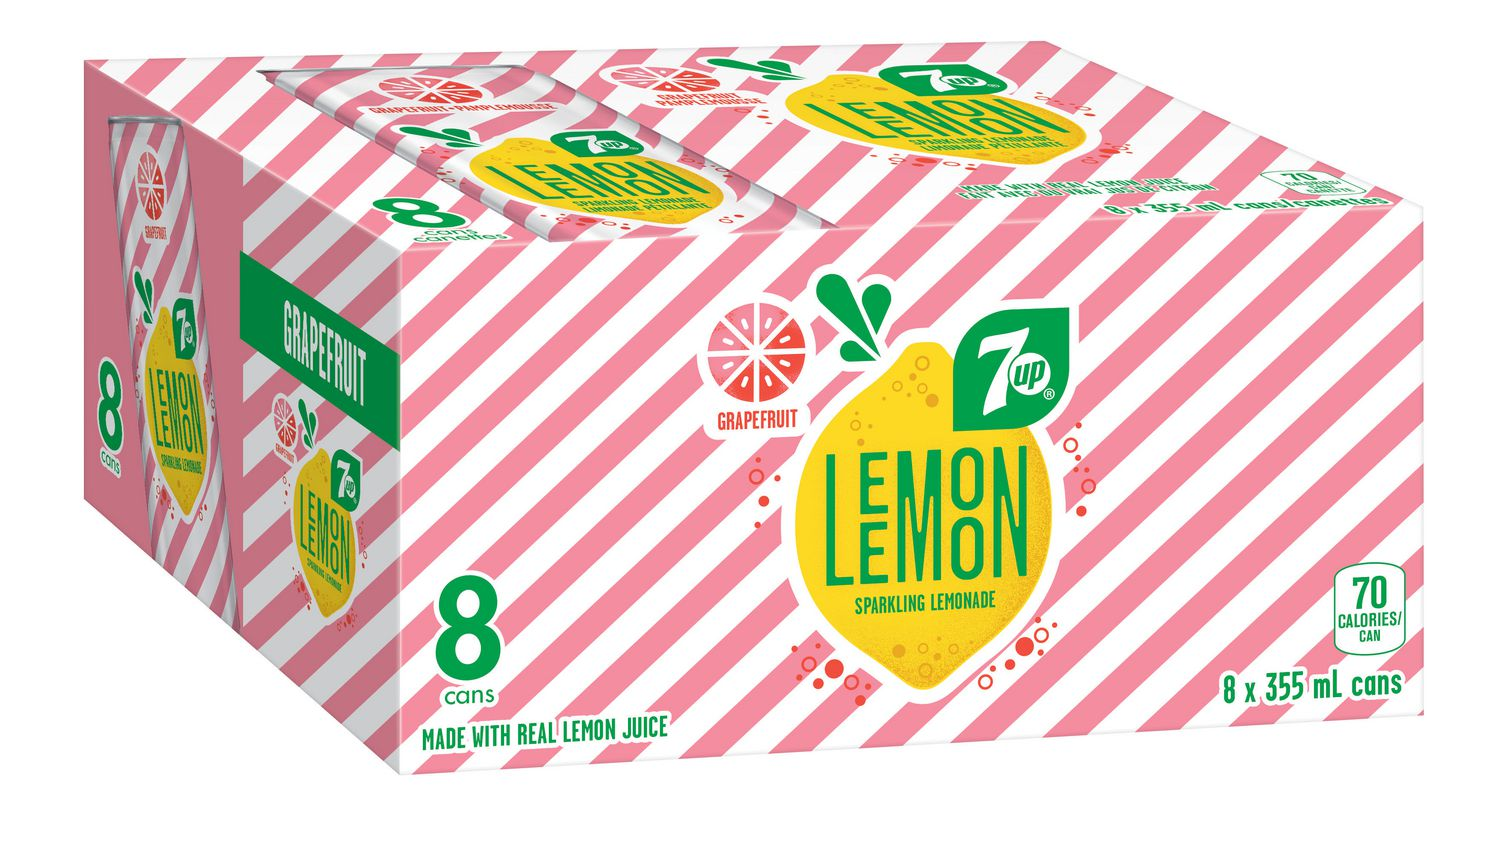 7up Lemon